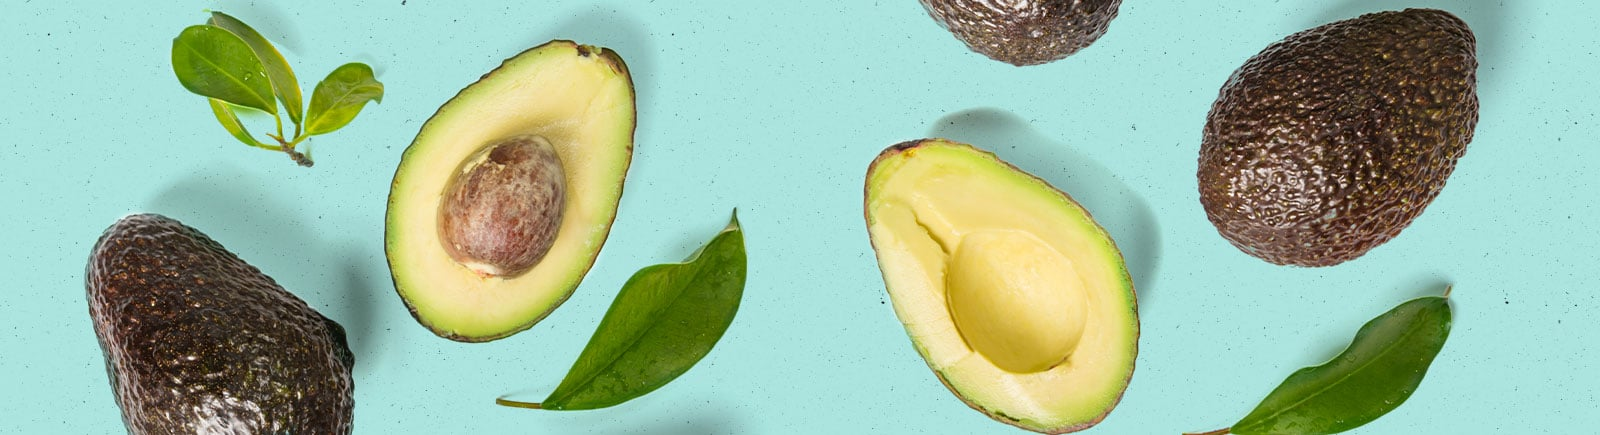 header image of avocados cut in half, some with pit some without a pit